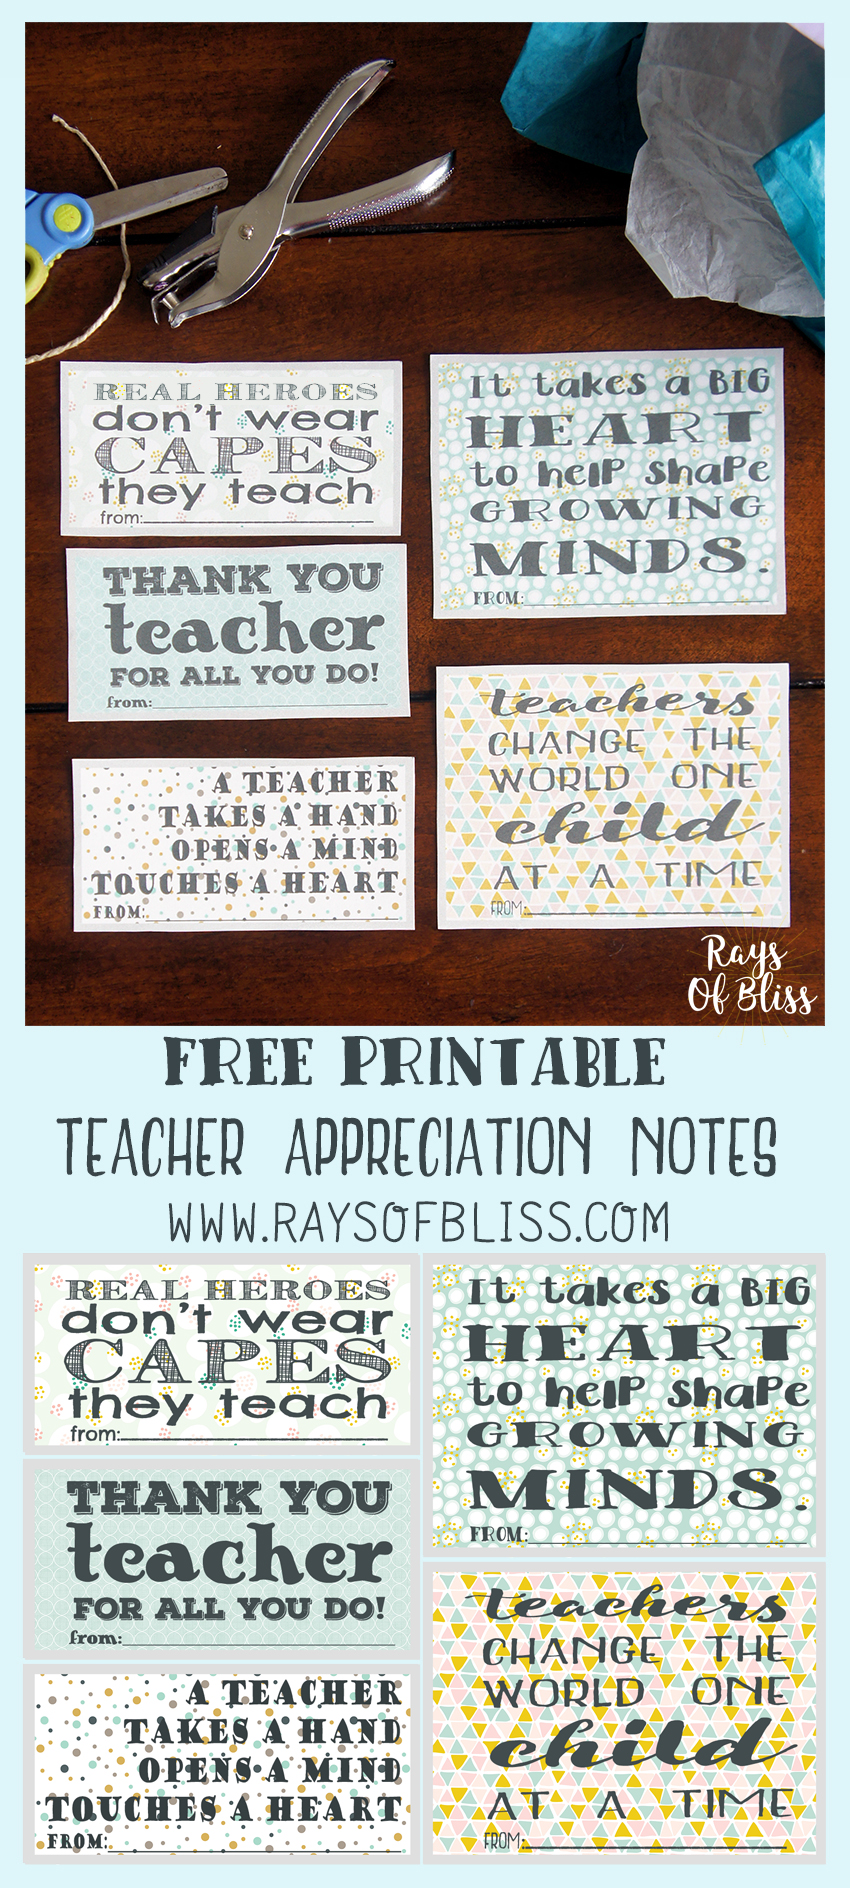 Teacher Appreciation Notes Free Printable Set of 5 - Rays of Bliss